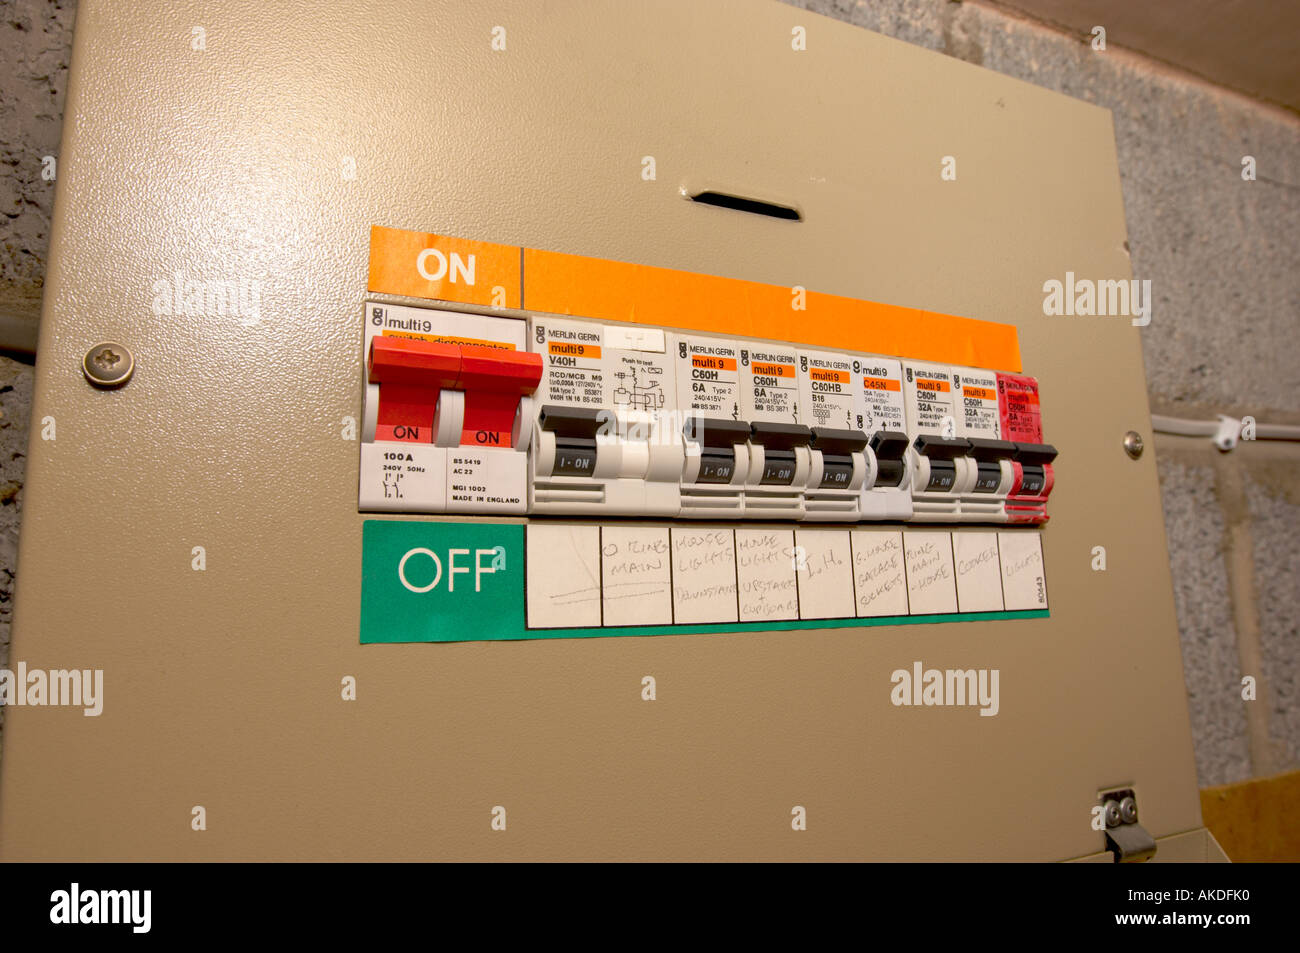 Fuse Box Circuit Breaker Guide And Troubleshooting Of Wiring Diagram Mcb Stock Photos Rh Alamy Com Cost